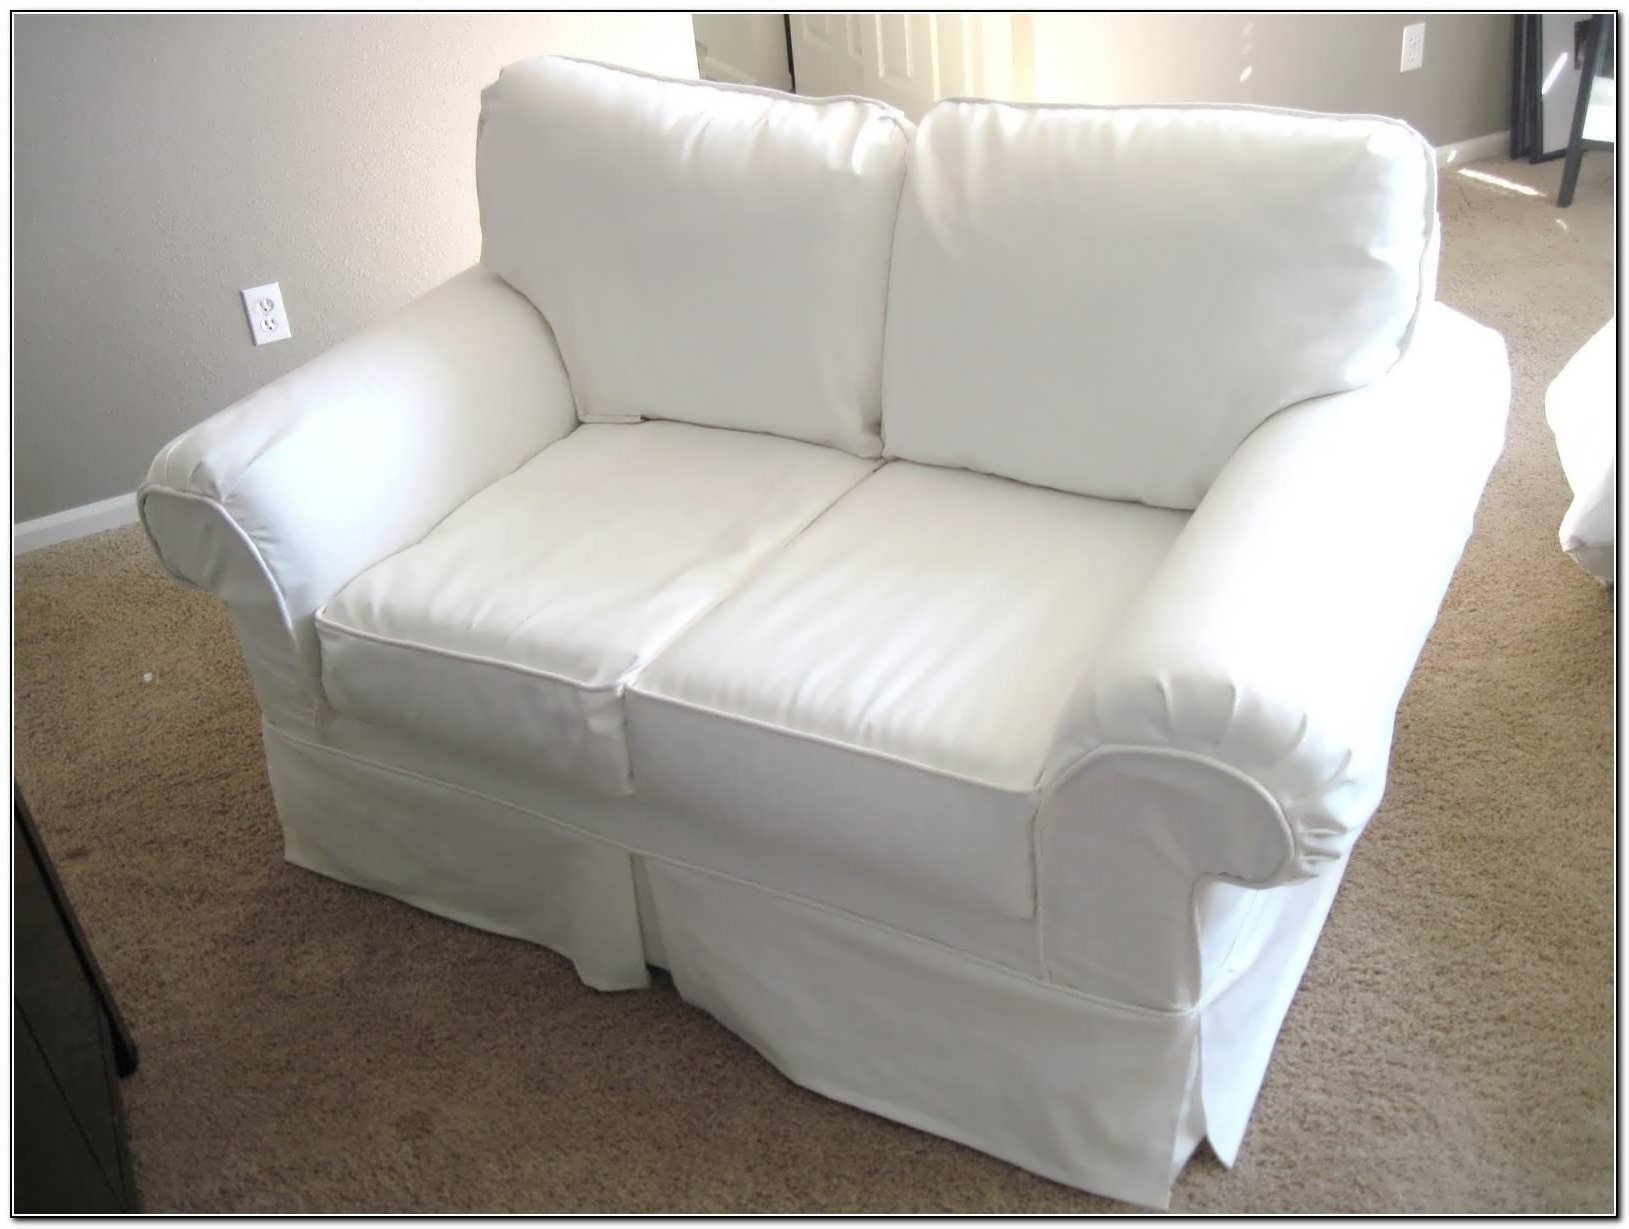 Preferred Furniture: Walmart Couch Covers (View 15 of 15)